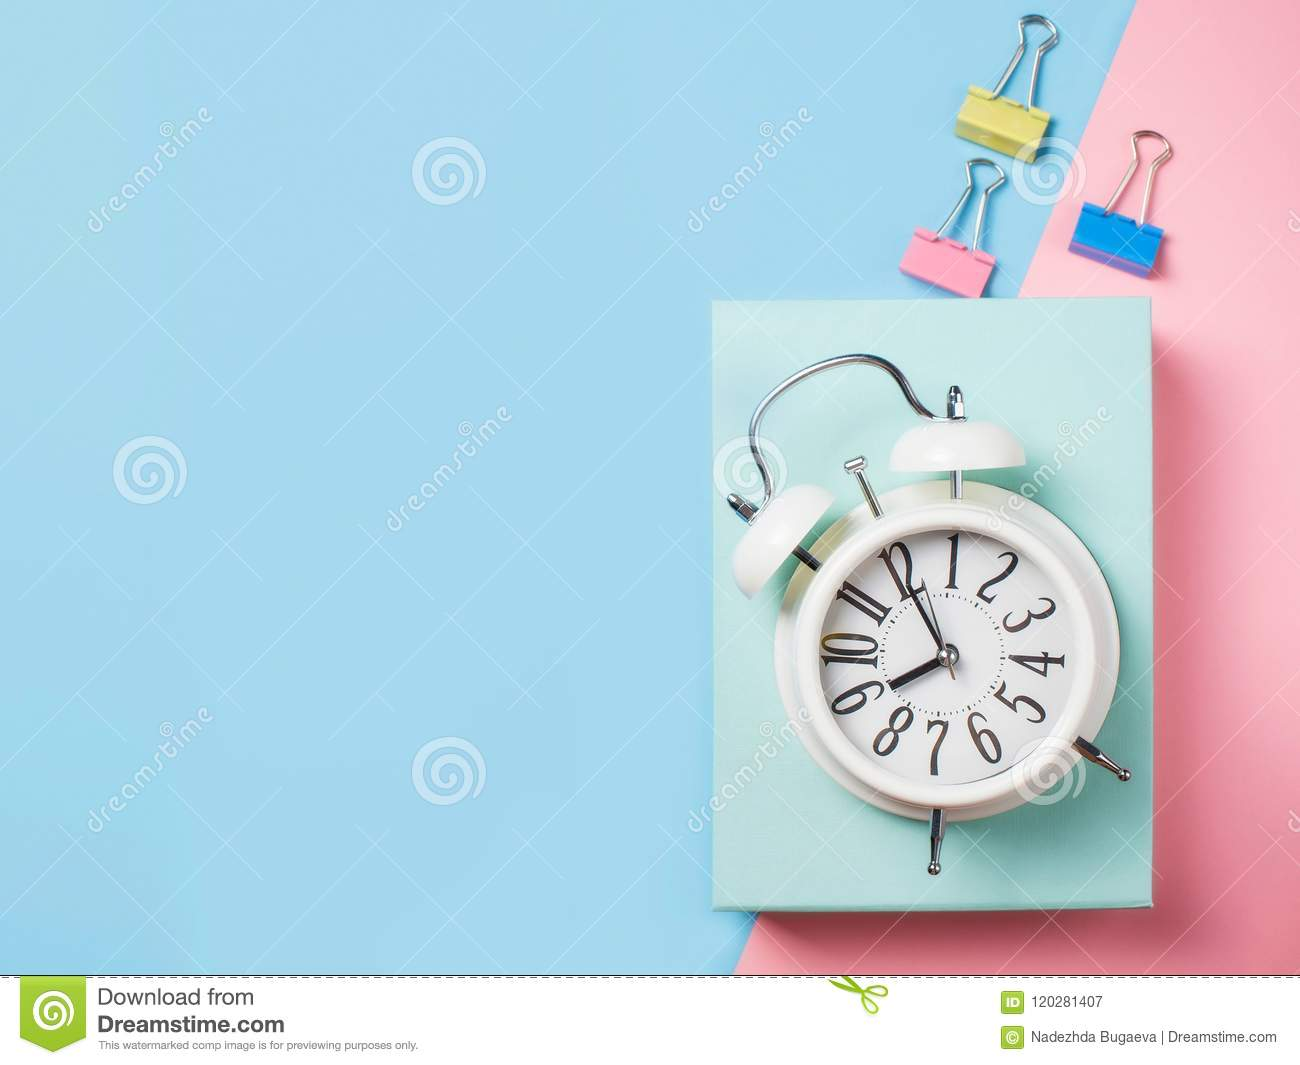 Alarm with supplies on color block background. Pastel minimalism